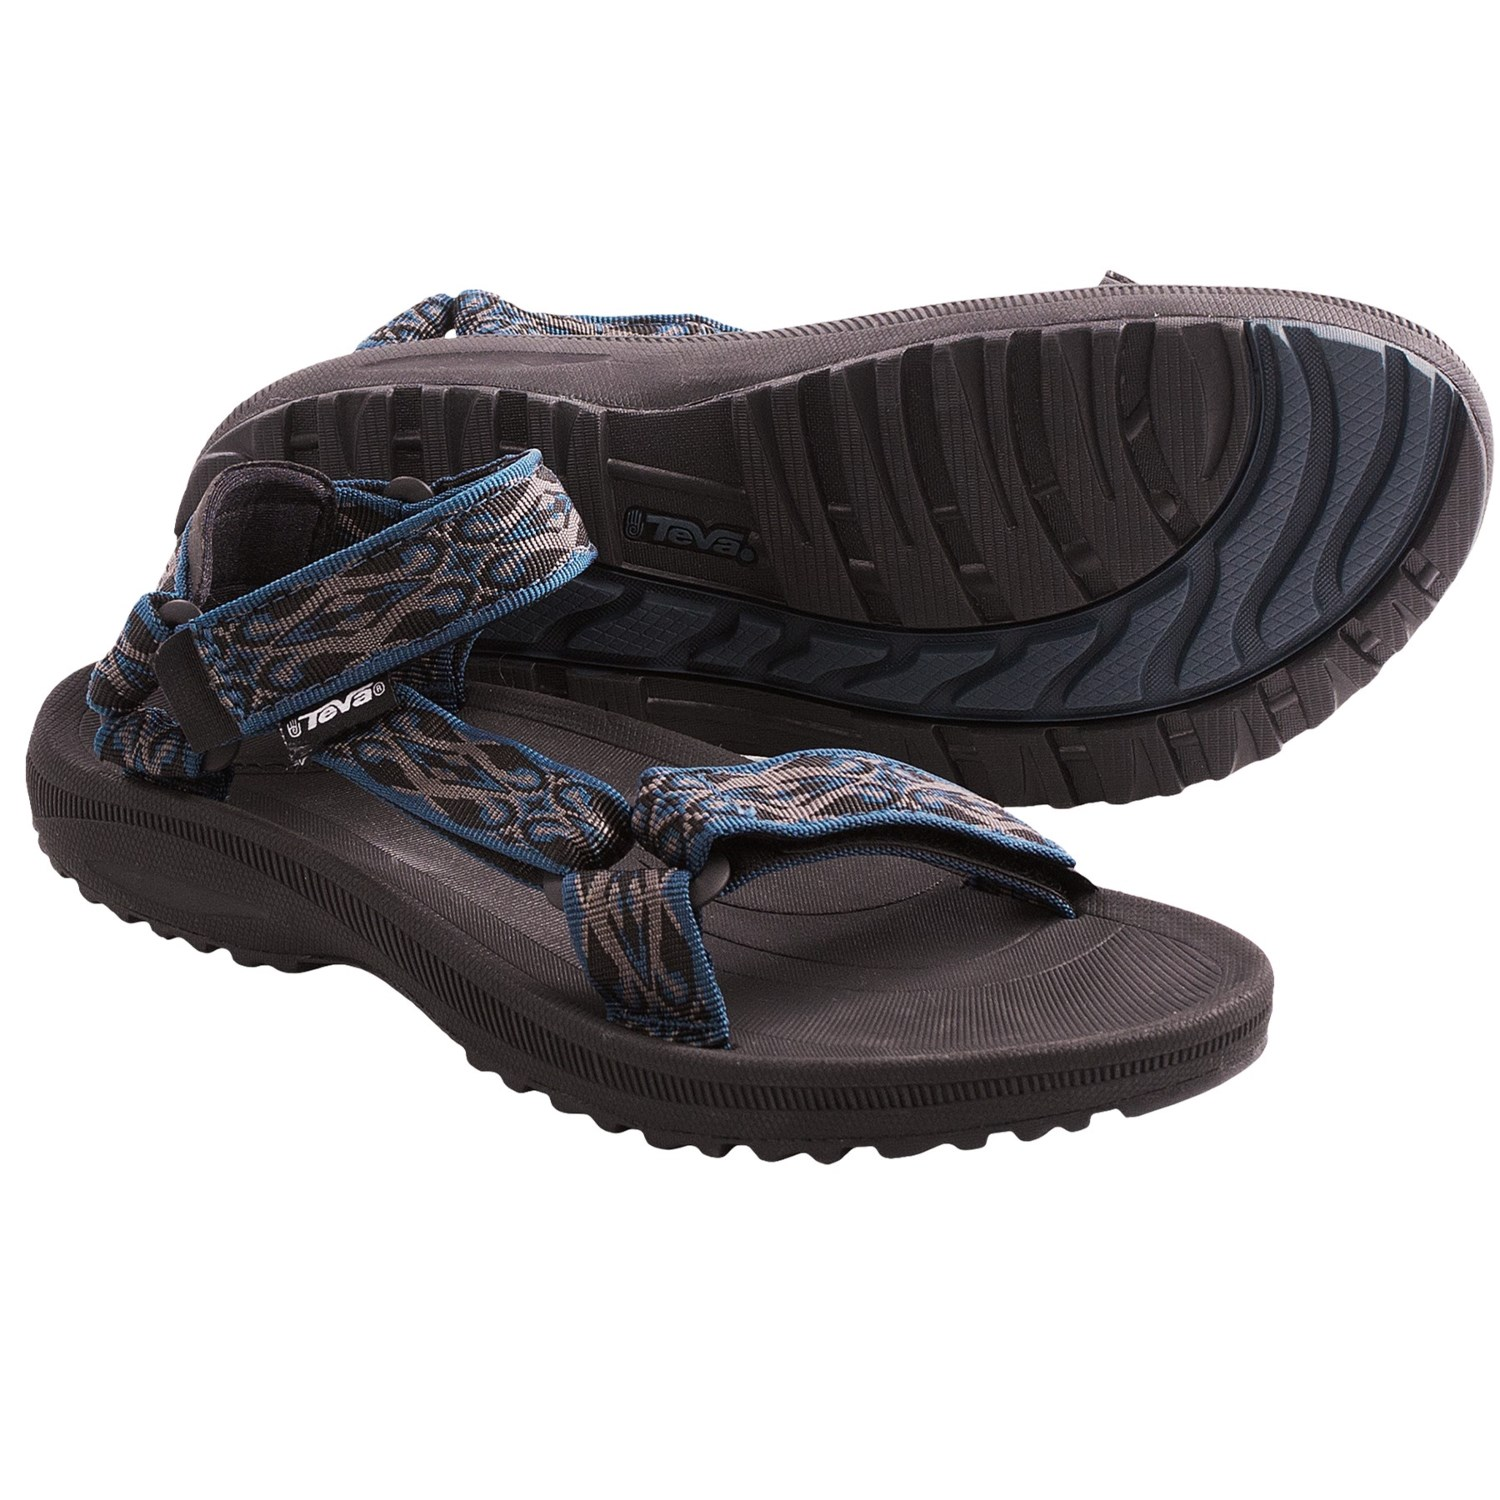 Where can you buy teva sandals